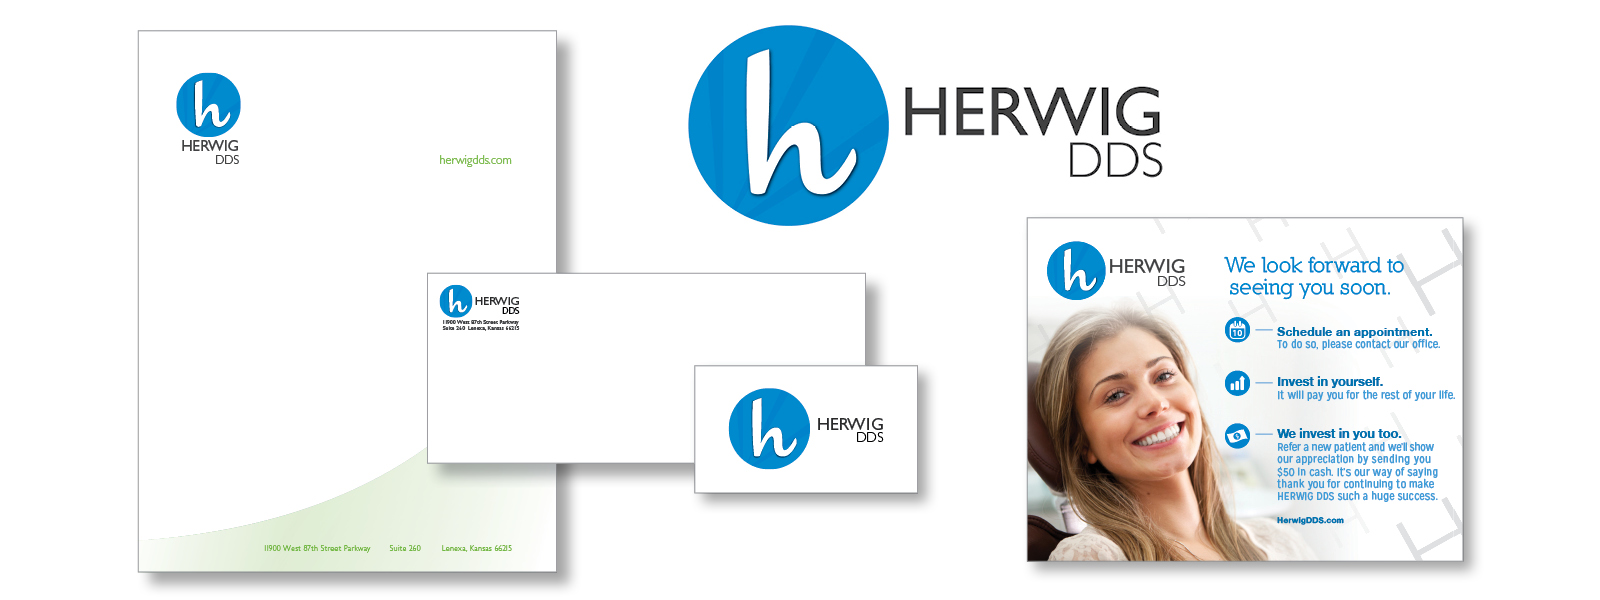 Sturges Word - Brand Identity for Herwig DDS